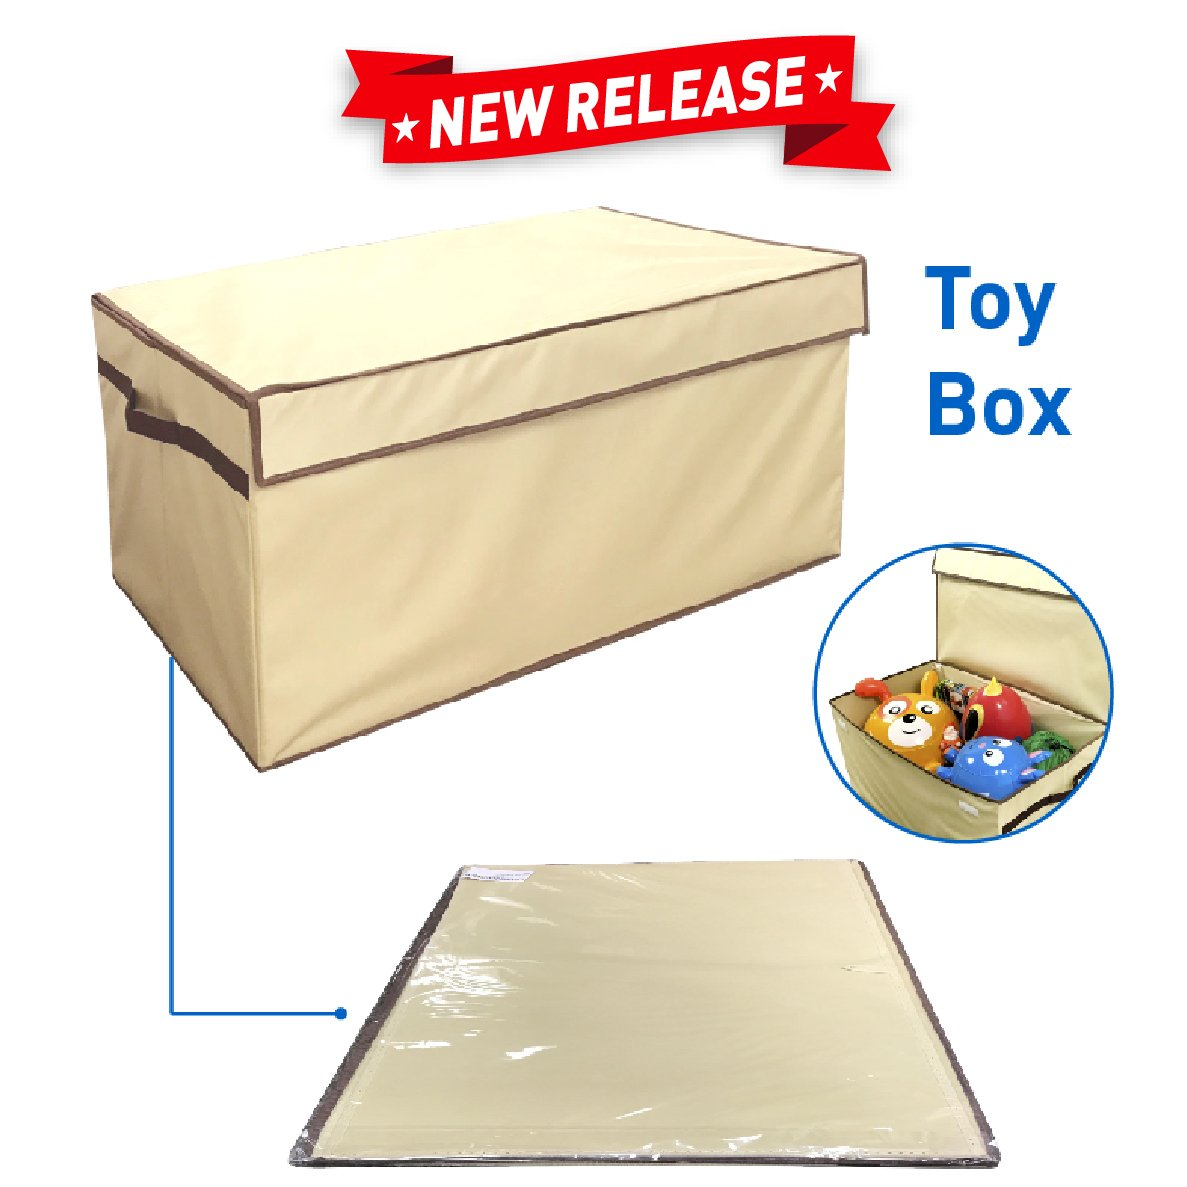 """EasyGoProducts Giant Toy Box Folding Toy Trunk Organizer, Toy Chest Collapsible Storage Bin, Great for Nursery or Any Room with Toy Box Lid and Side Handles - 30"""" Wide x 16"""" deep x 15"""" Tall"""